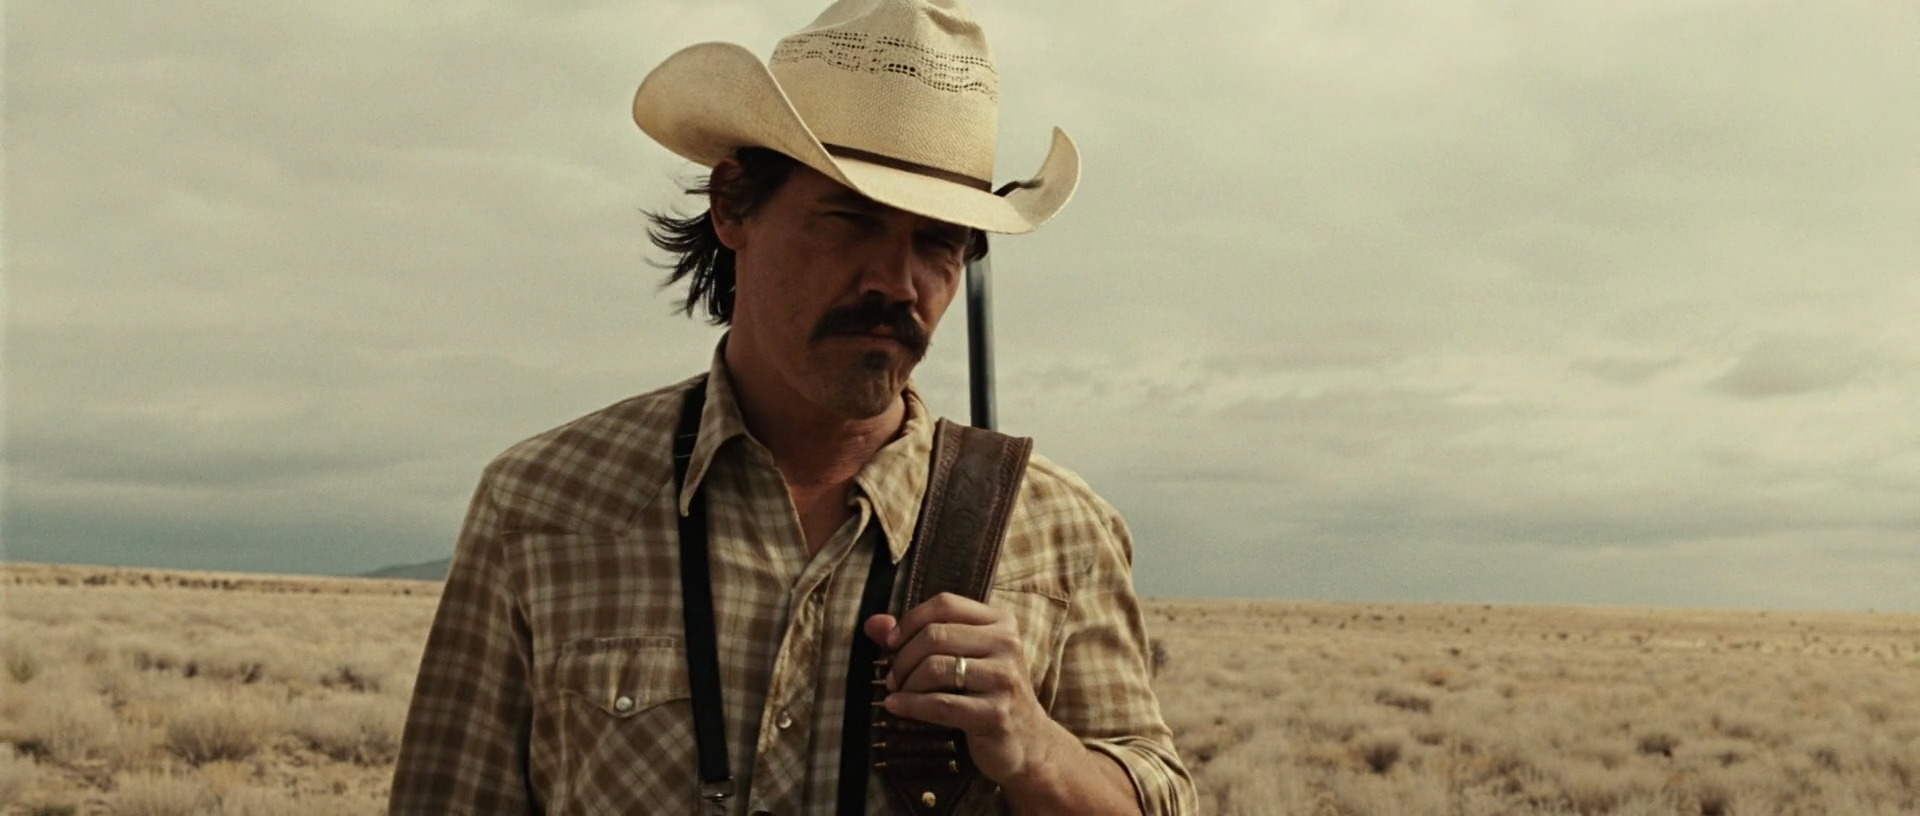 no country for old men synopsis The man exuded controlled evil, and i found myself not breathing when he came onto screen, yet couldn't take my eyes from him - a truly mesmerising presence tommy lee jones turns in a belter of a performance, and mention should also be made of kelly macdonald who nails a faultless texan accent alongside a multi-layered performance (despite the.